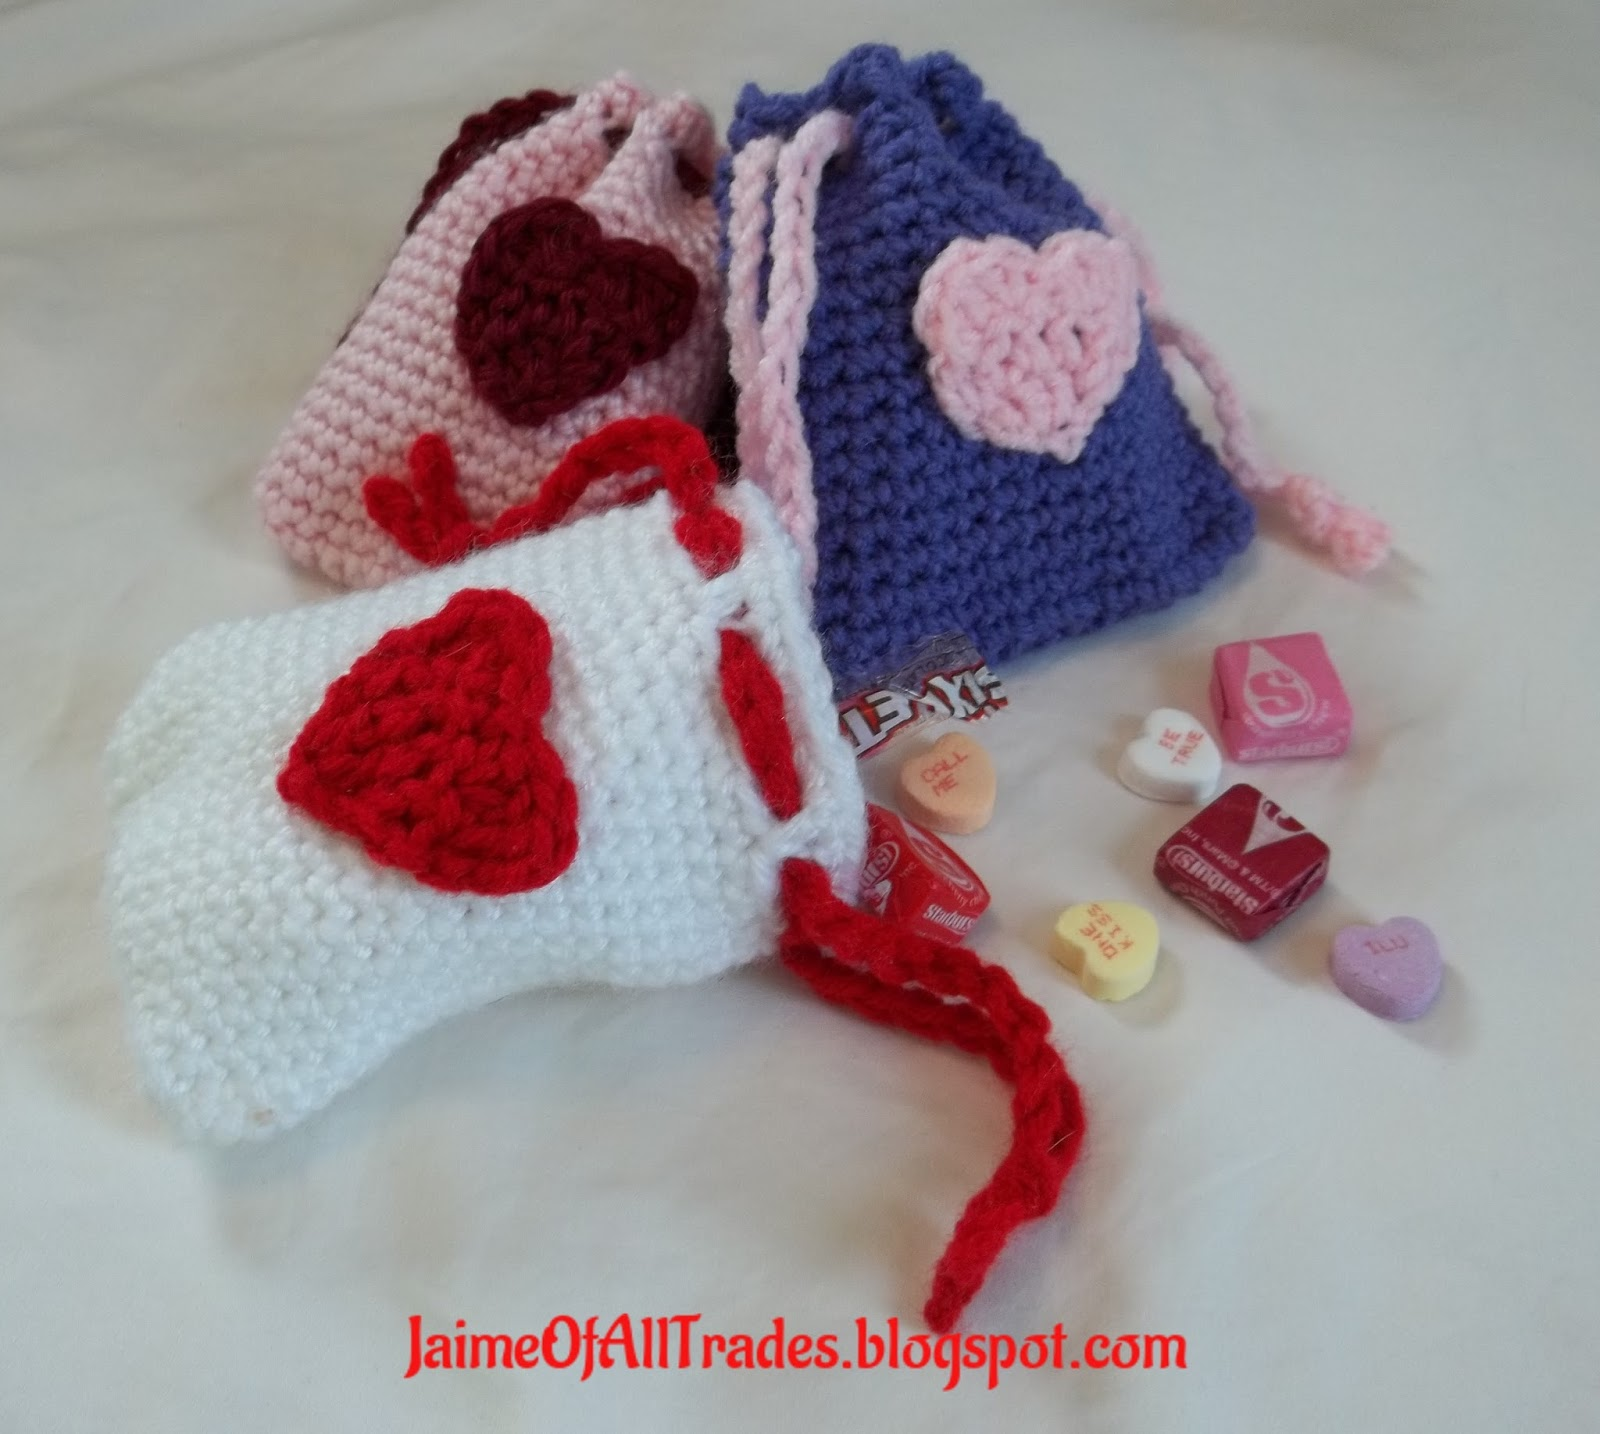 Jaime of All Trades: Crochet Valentine\'s Day Treat Bags